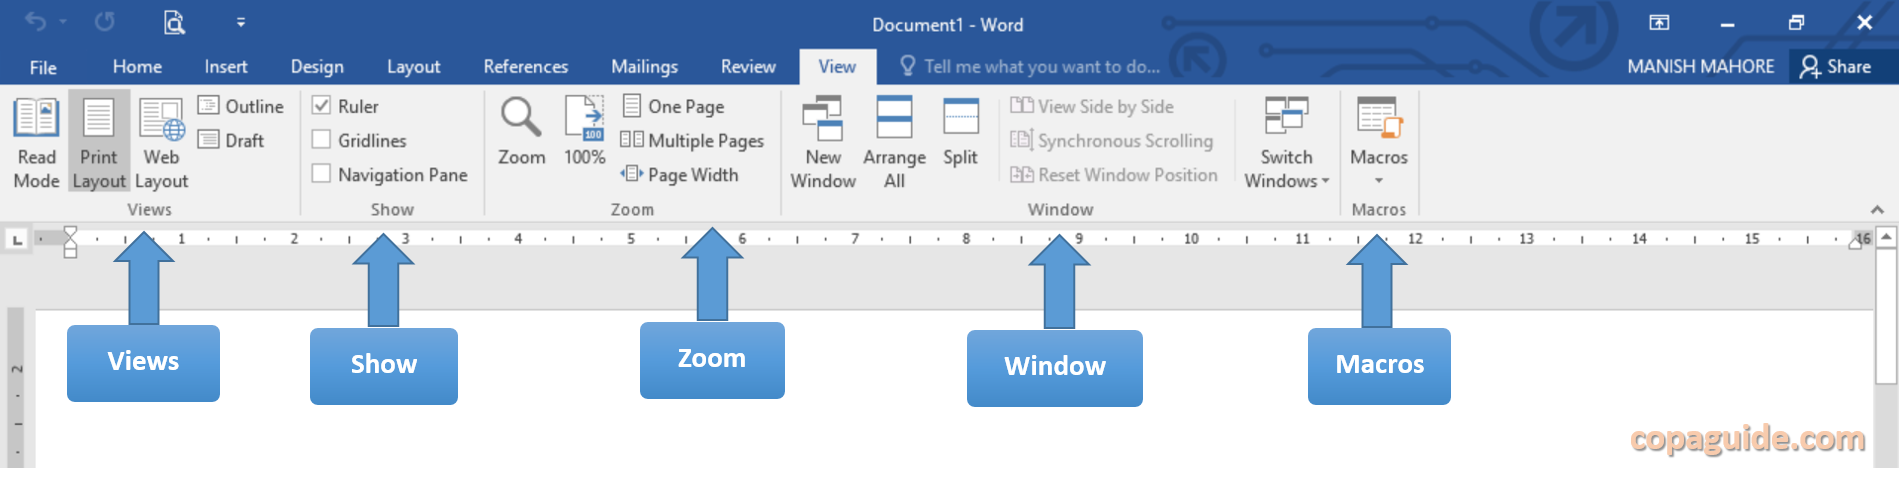 MS Word View Tab Commands